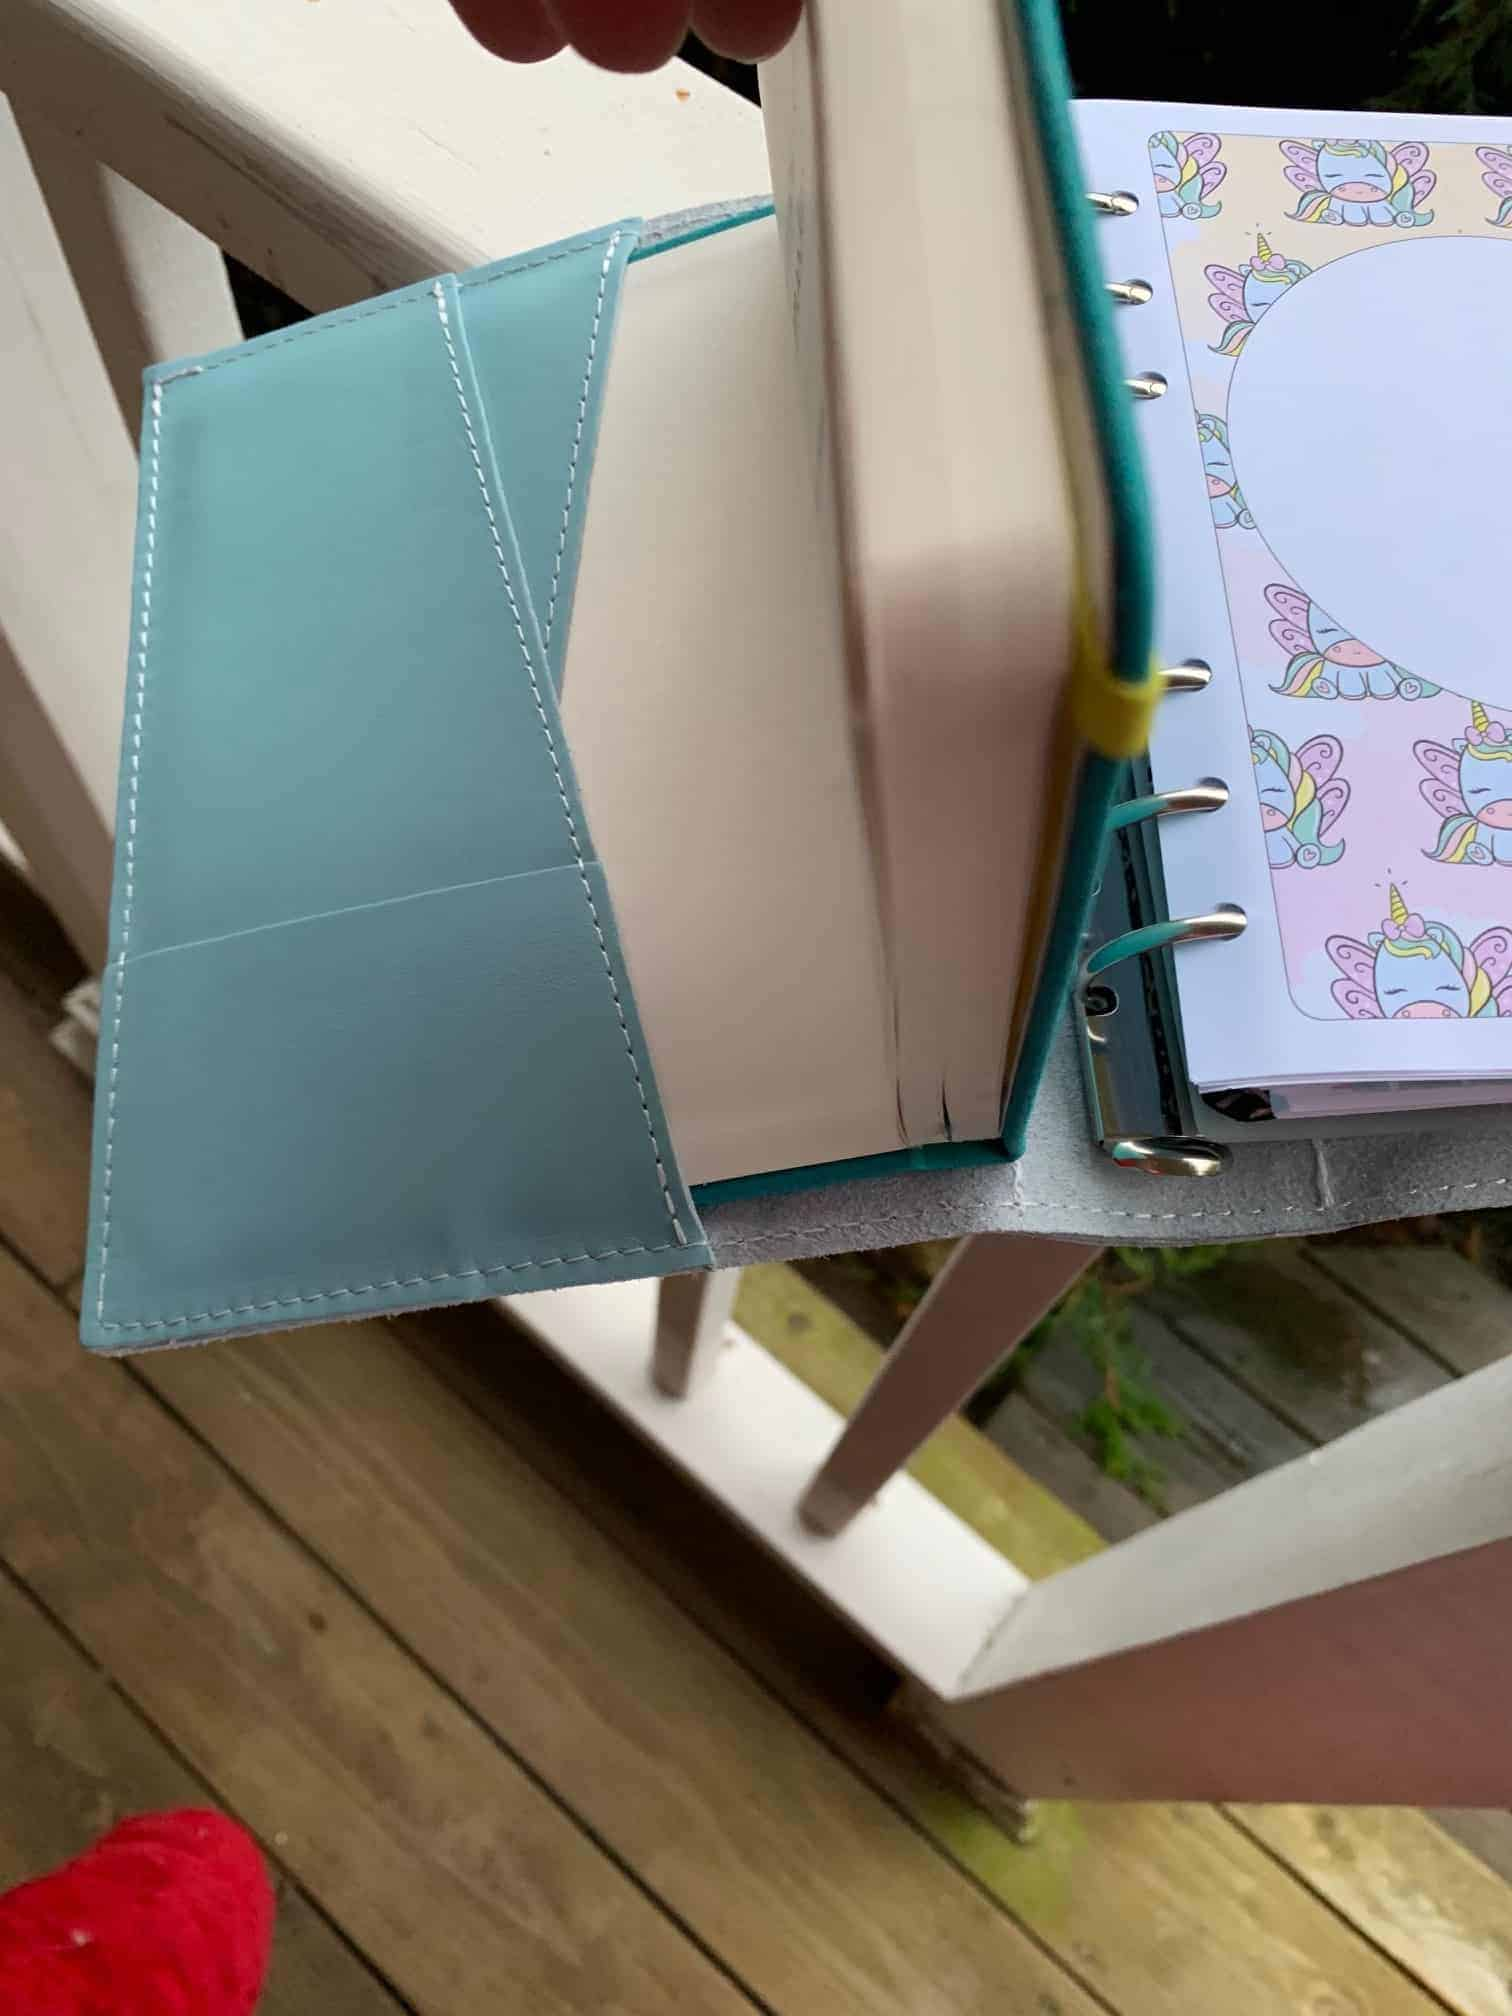 Placing hard bound notebook into foxy fix ring binder.